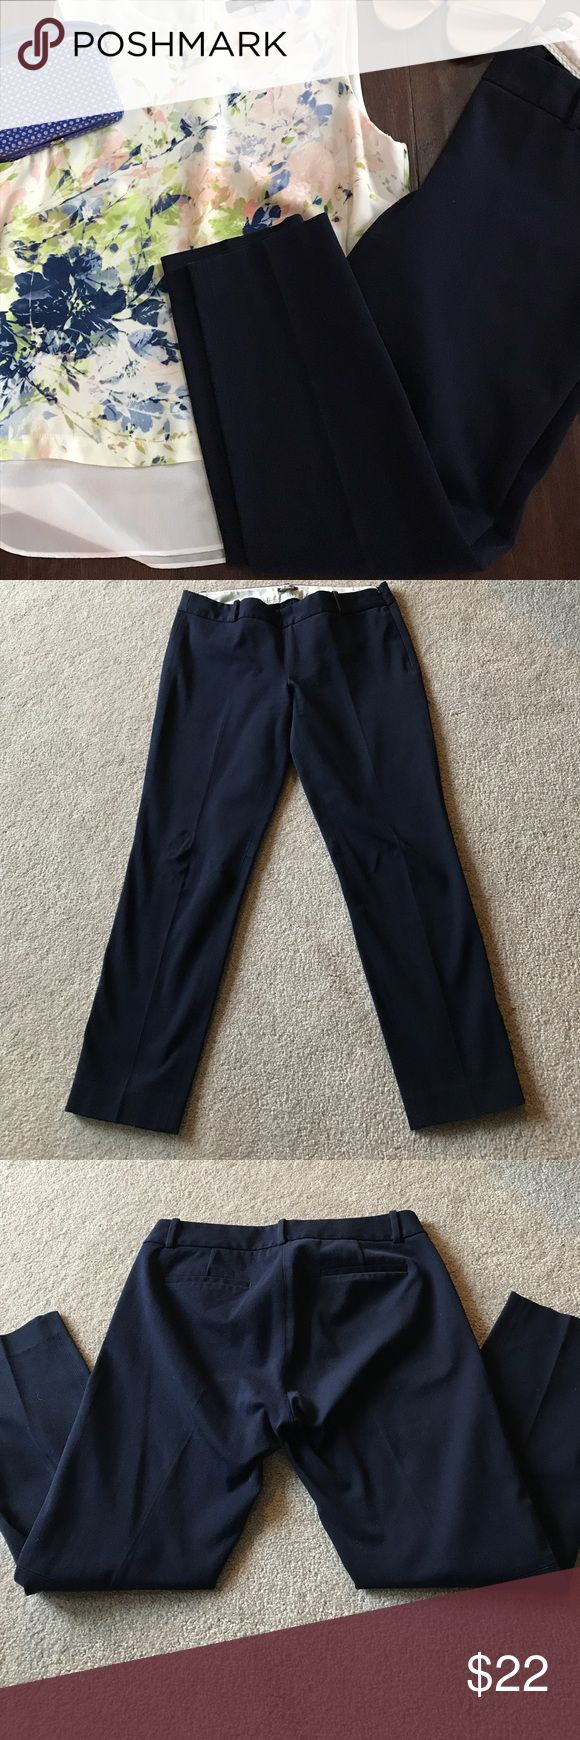 •J. Crew• Ankle Pants J Crew stretch City Fit cropped pants in excellent used condition! Beautiful navy color with no fading, rips, or tares. There is a hidden zipper with hook and eye closure on left side. No pockets (flaps on back are for style only, not functional). Pants are approximately 34 inches long. From a smoke free and pet free home. {j.crew, jcrew, dark blue, crop, crops, capri, capris, trousers, professional, office wear, business casual, EUC} J. Crew Pants Ankle & Cropped